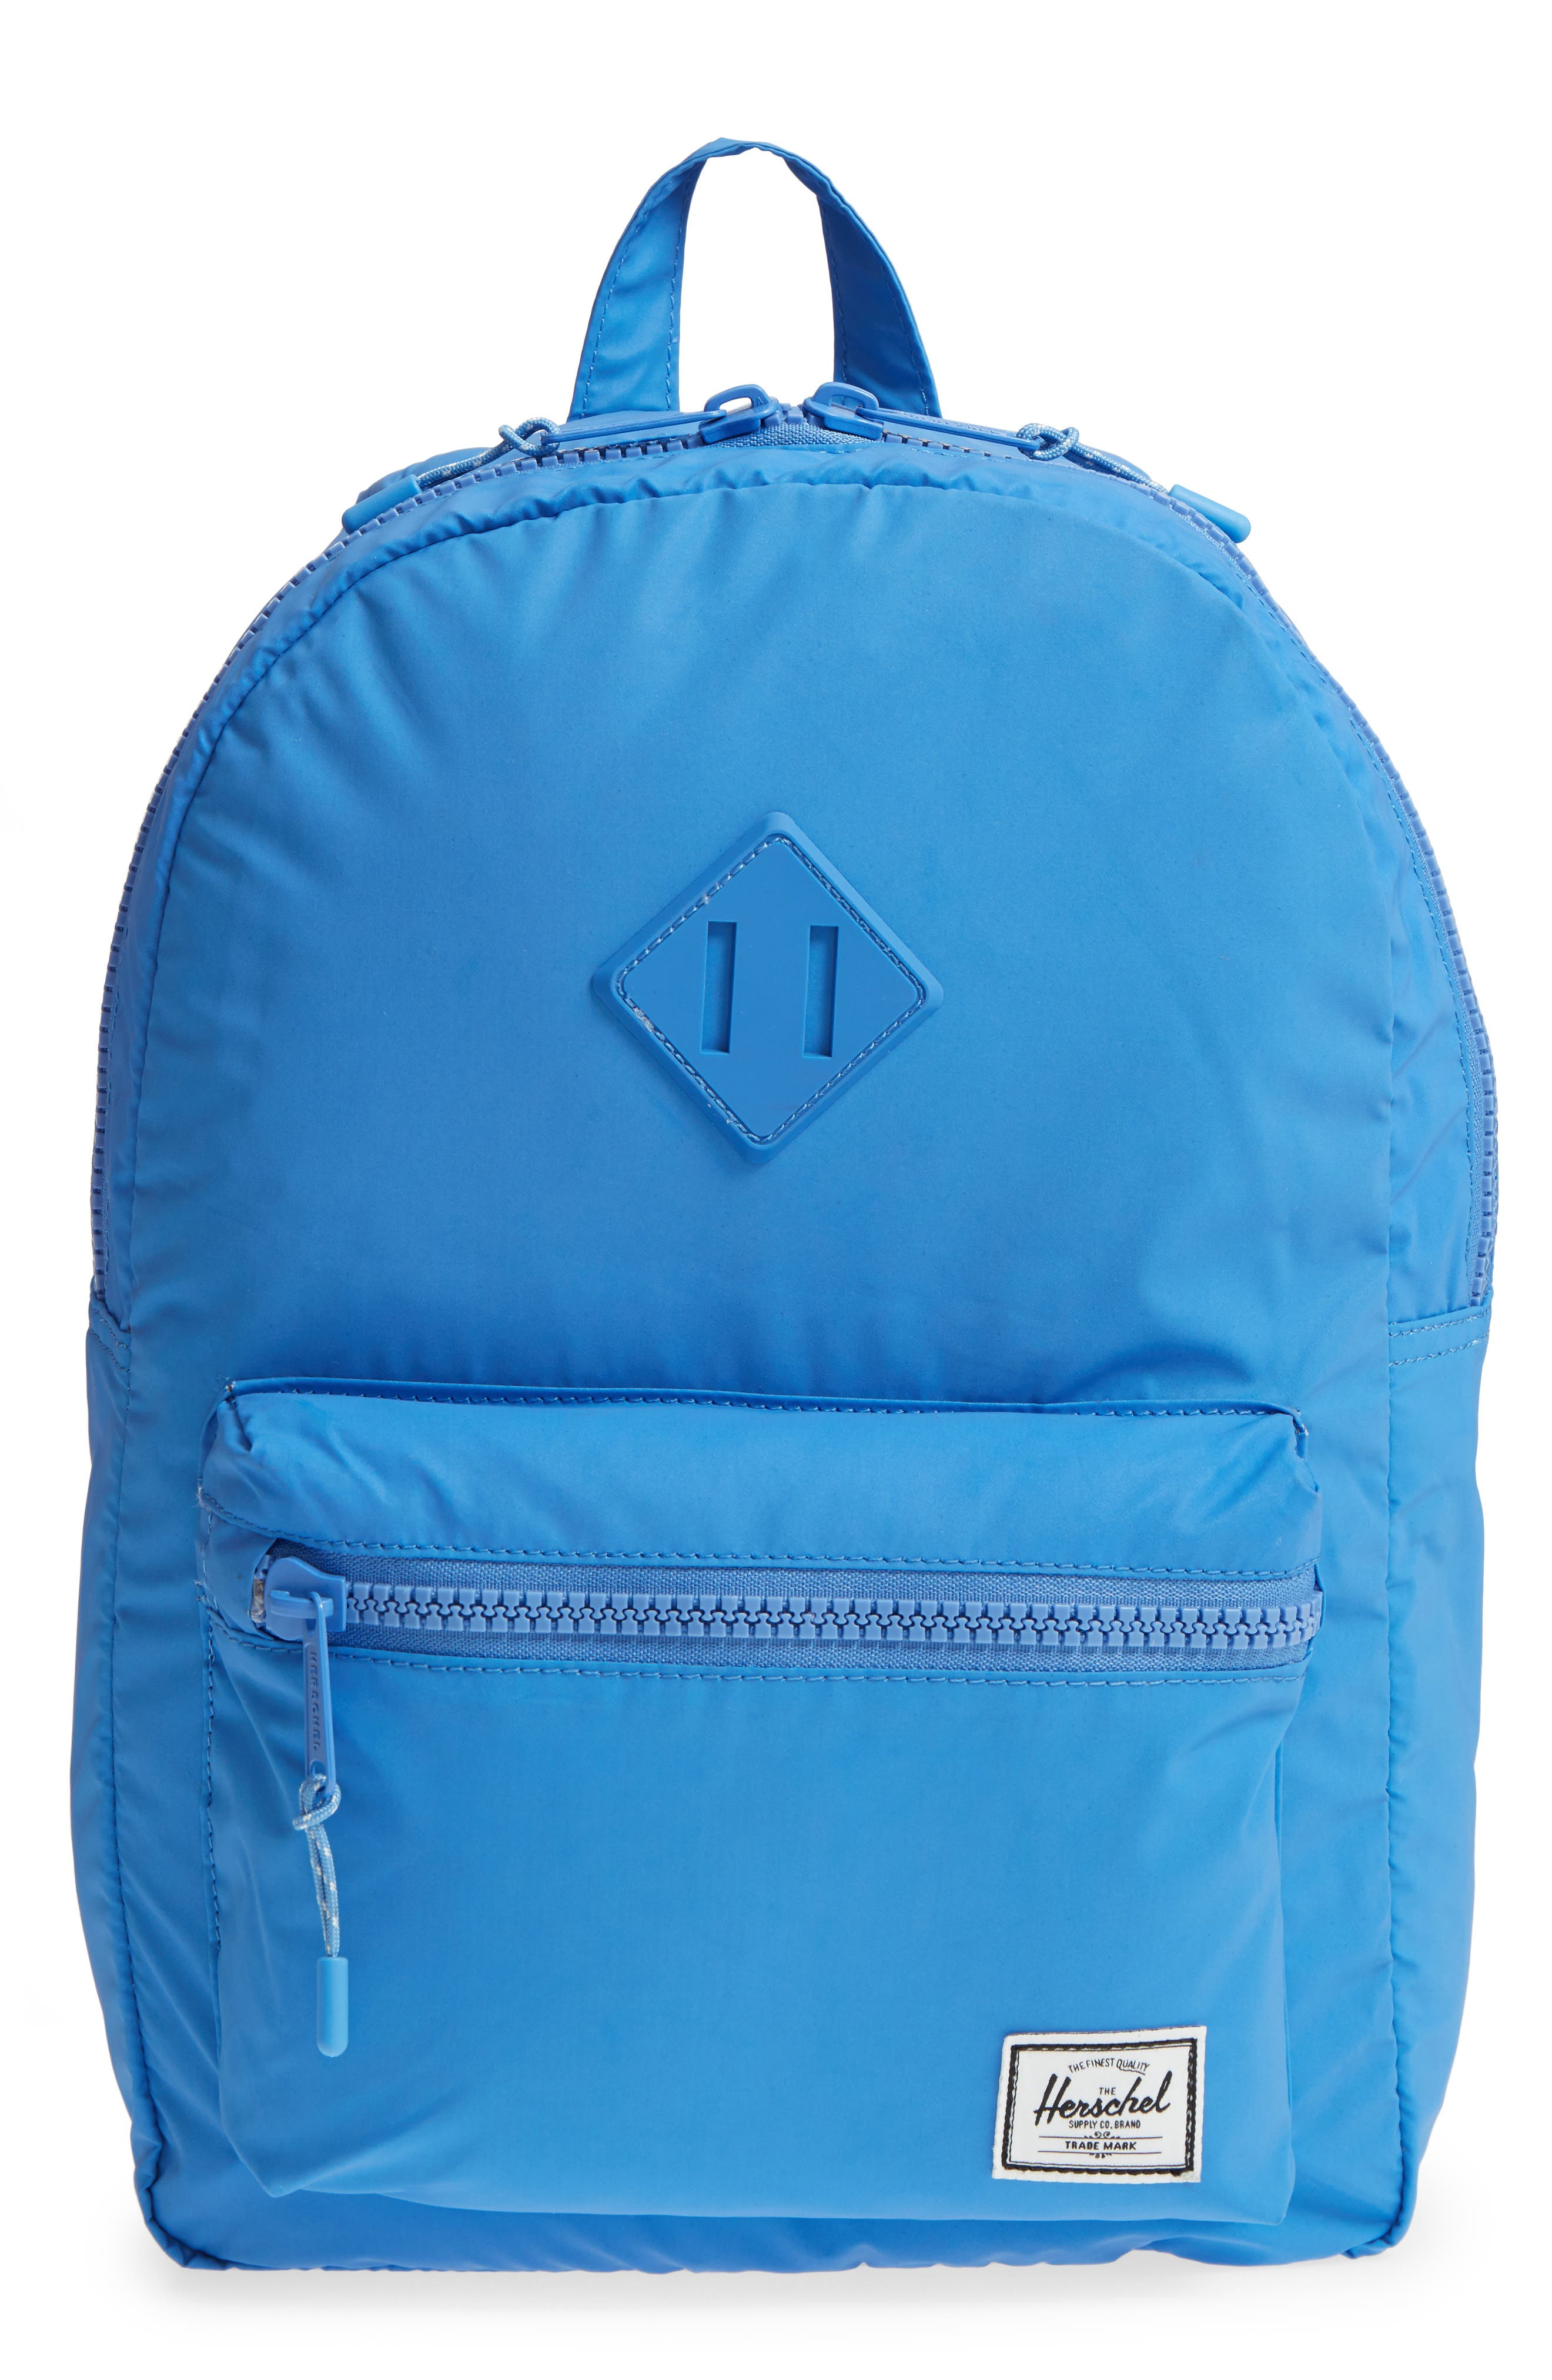 Heritage Backpack,                             Main thumbnail 1, color,                             Blue Reflective Rubber